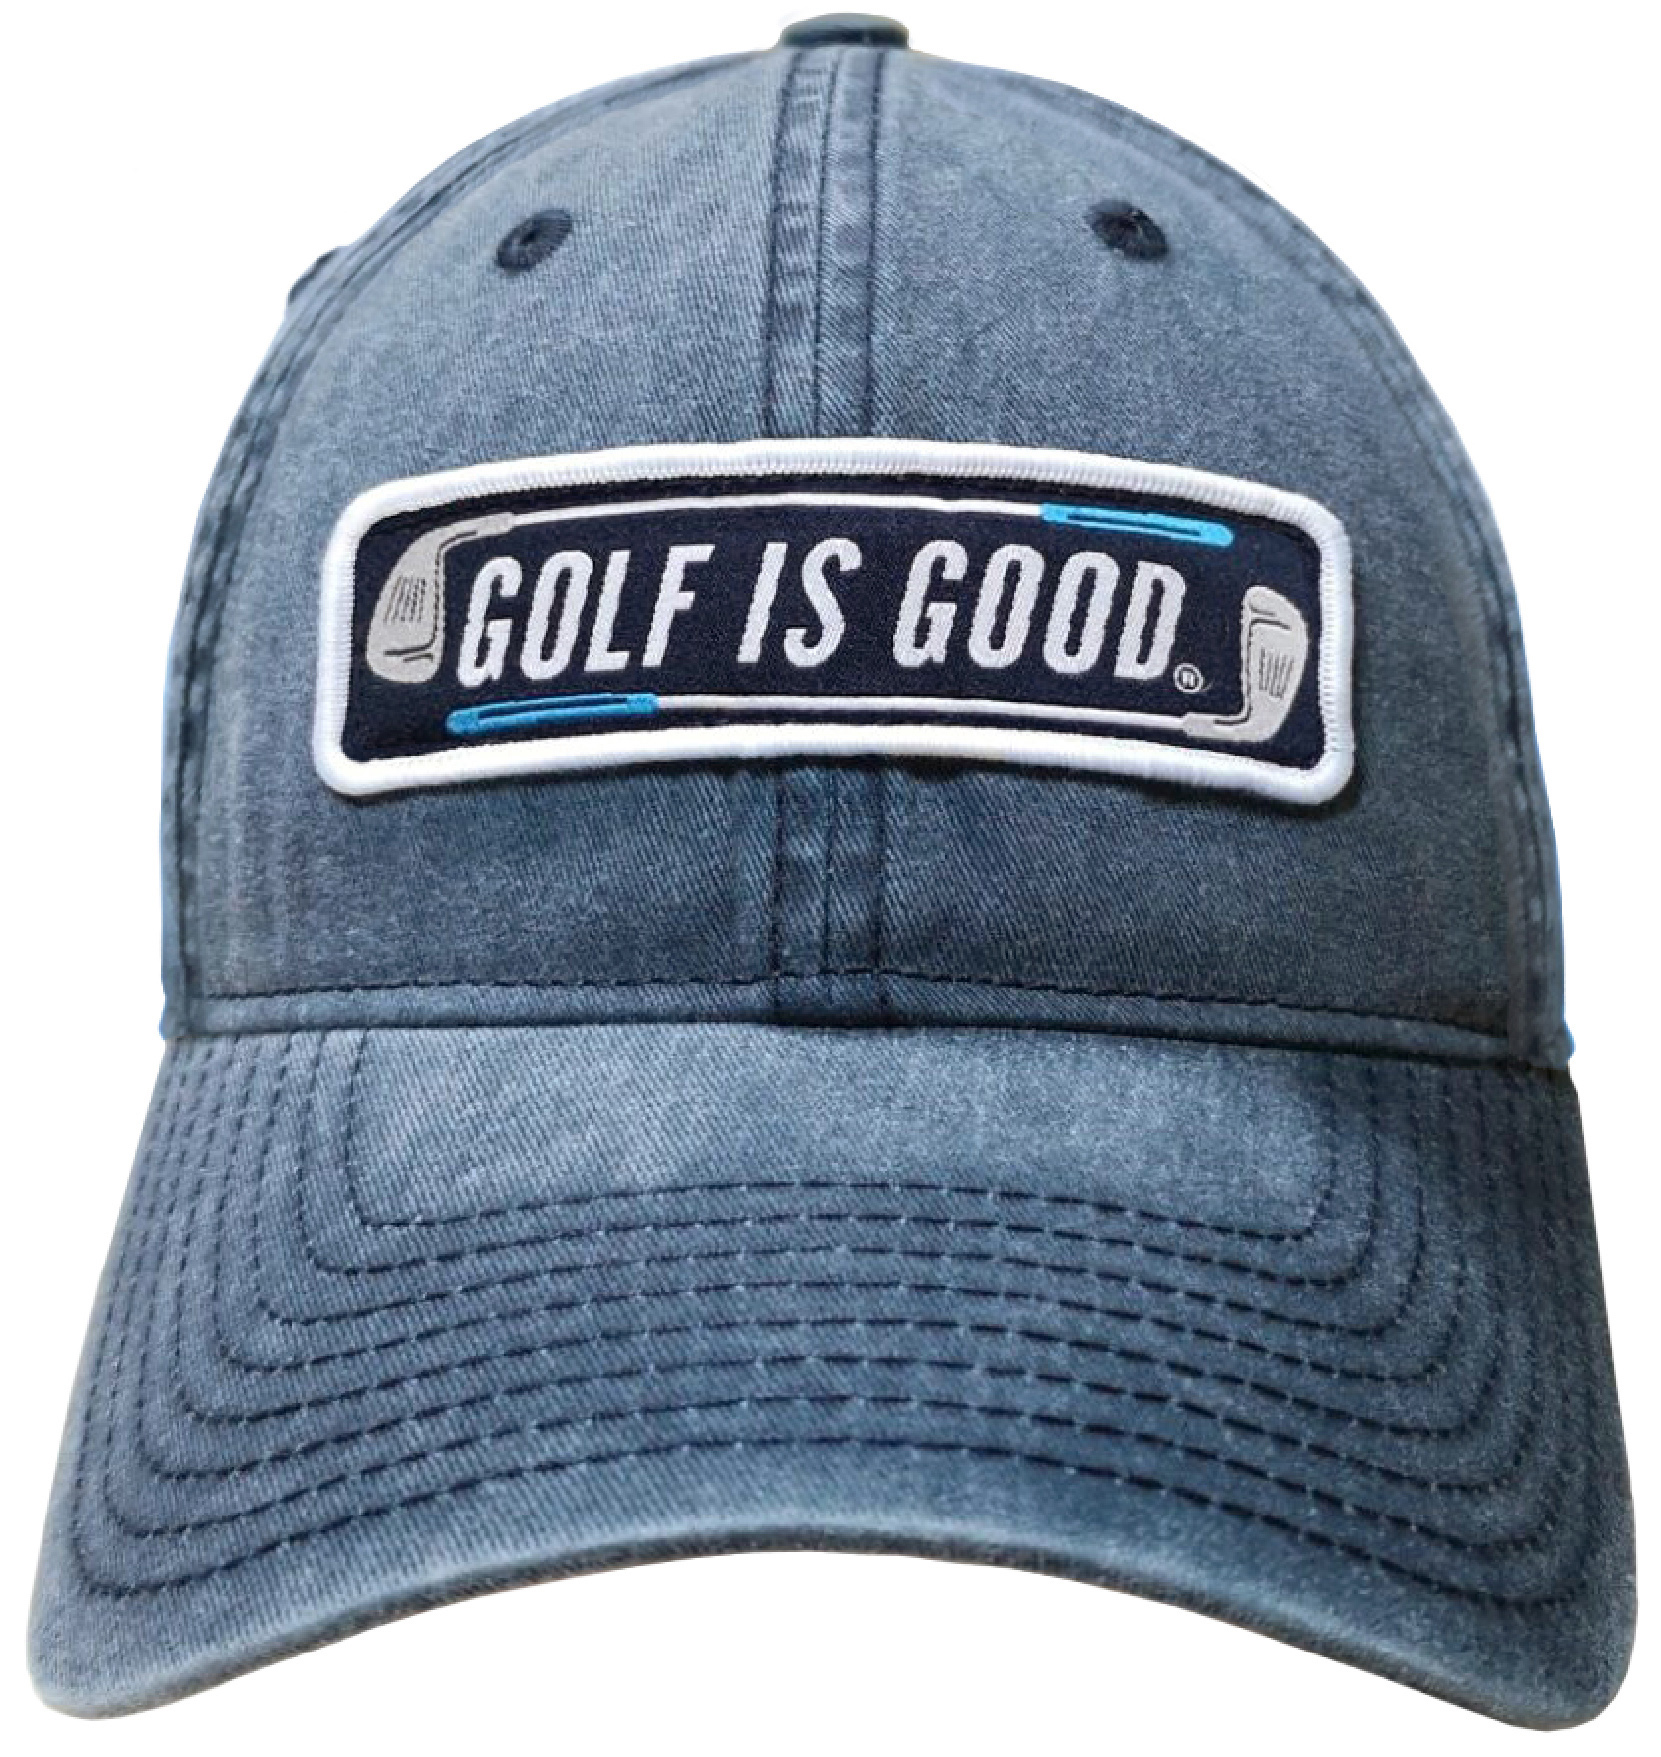 Golf is Good ® Washed Navy Adjustable Cap by Life is Sports LLC (Full Cotton)